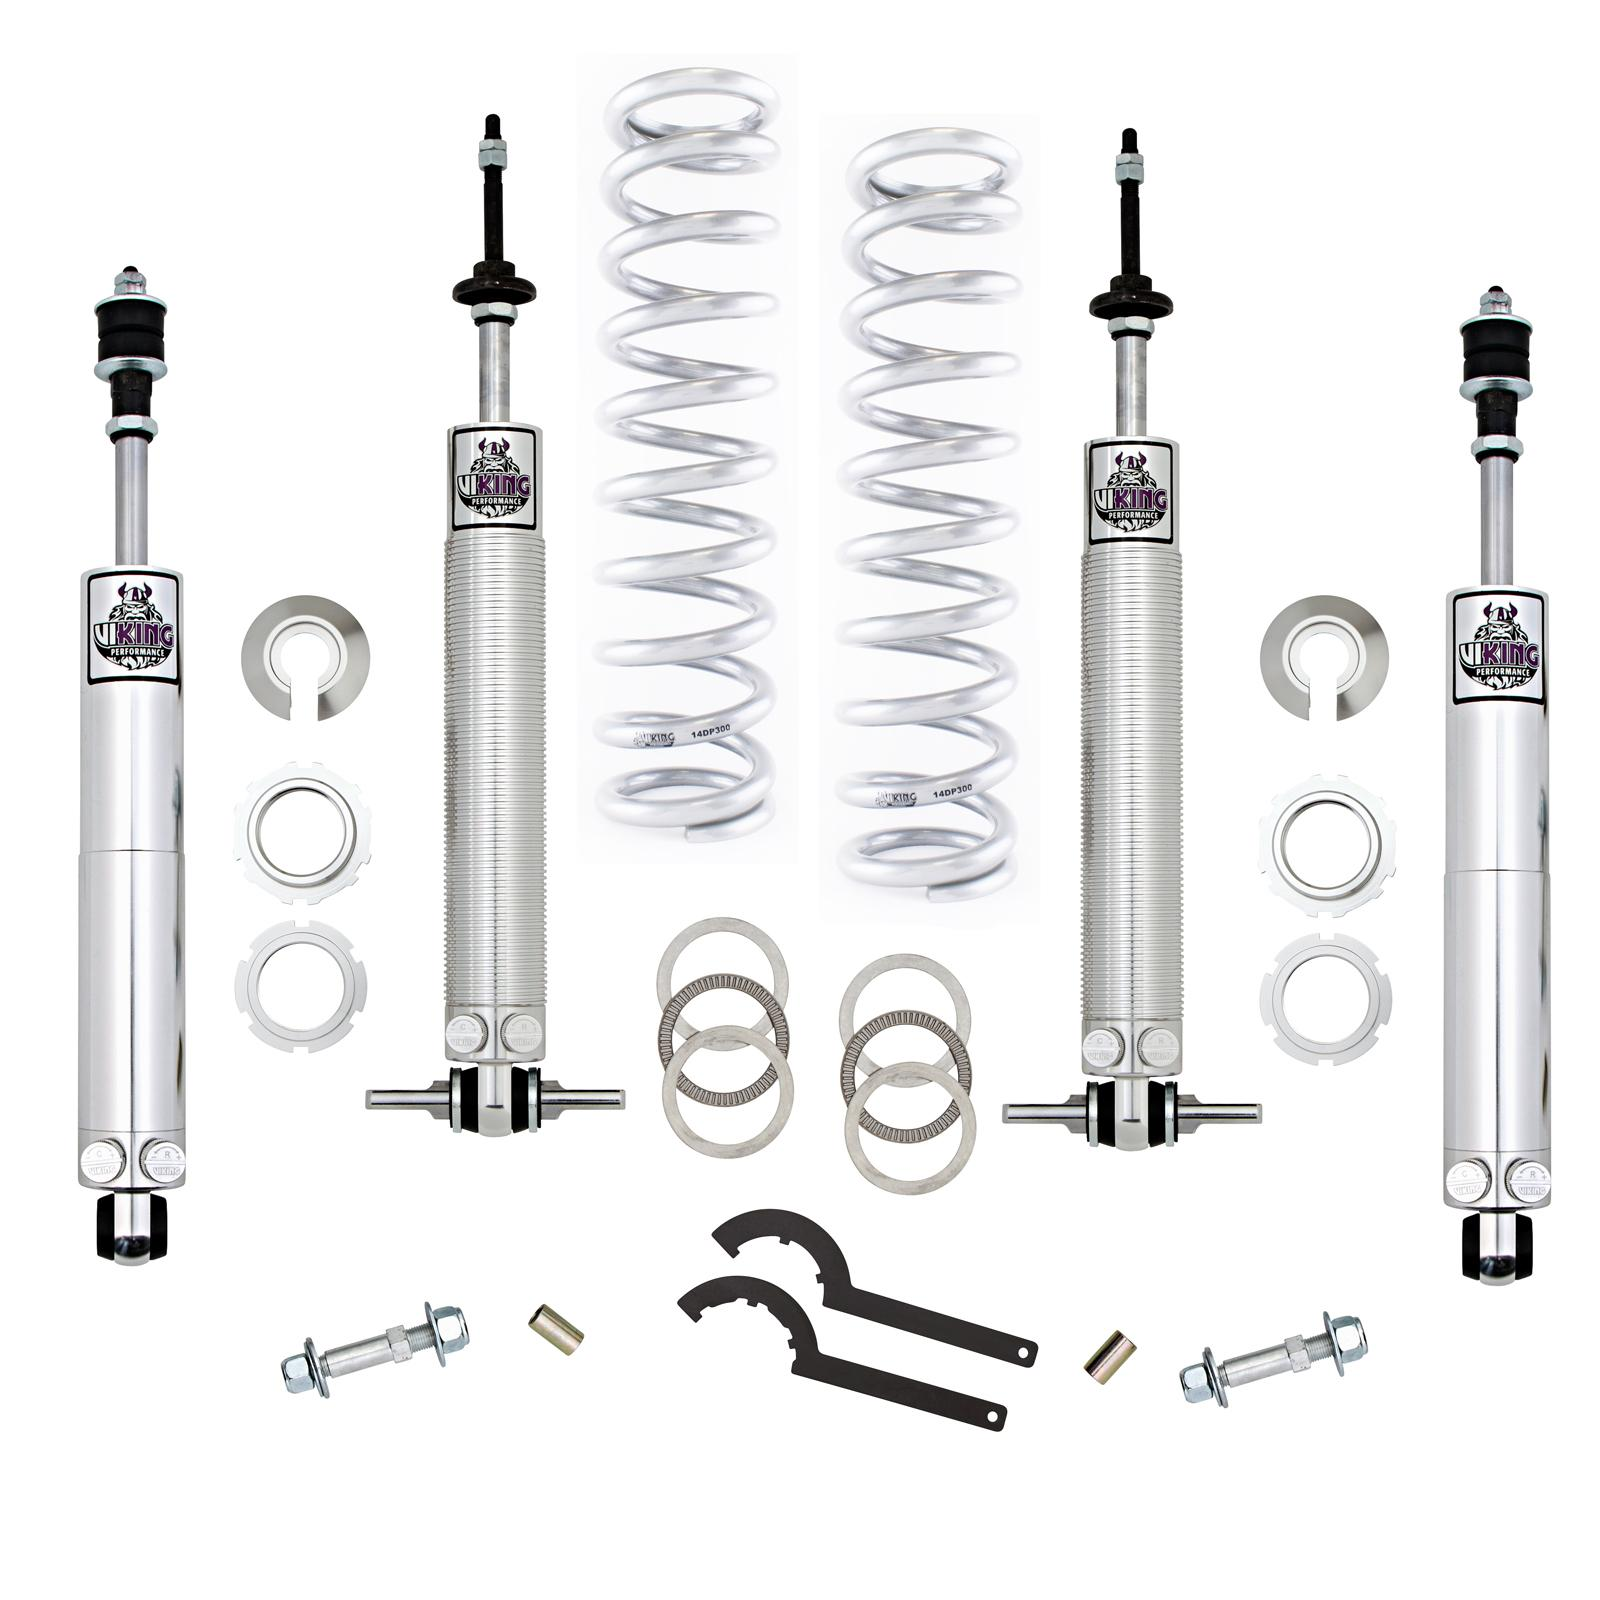 93-02 Fbody Viking Performance Total Vehicle Package - 300lb Springs